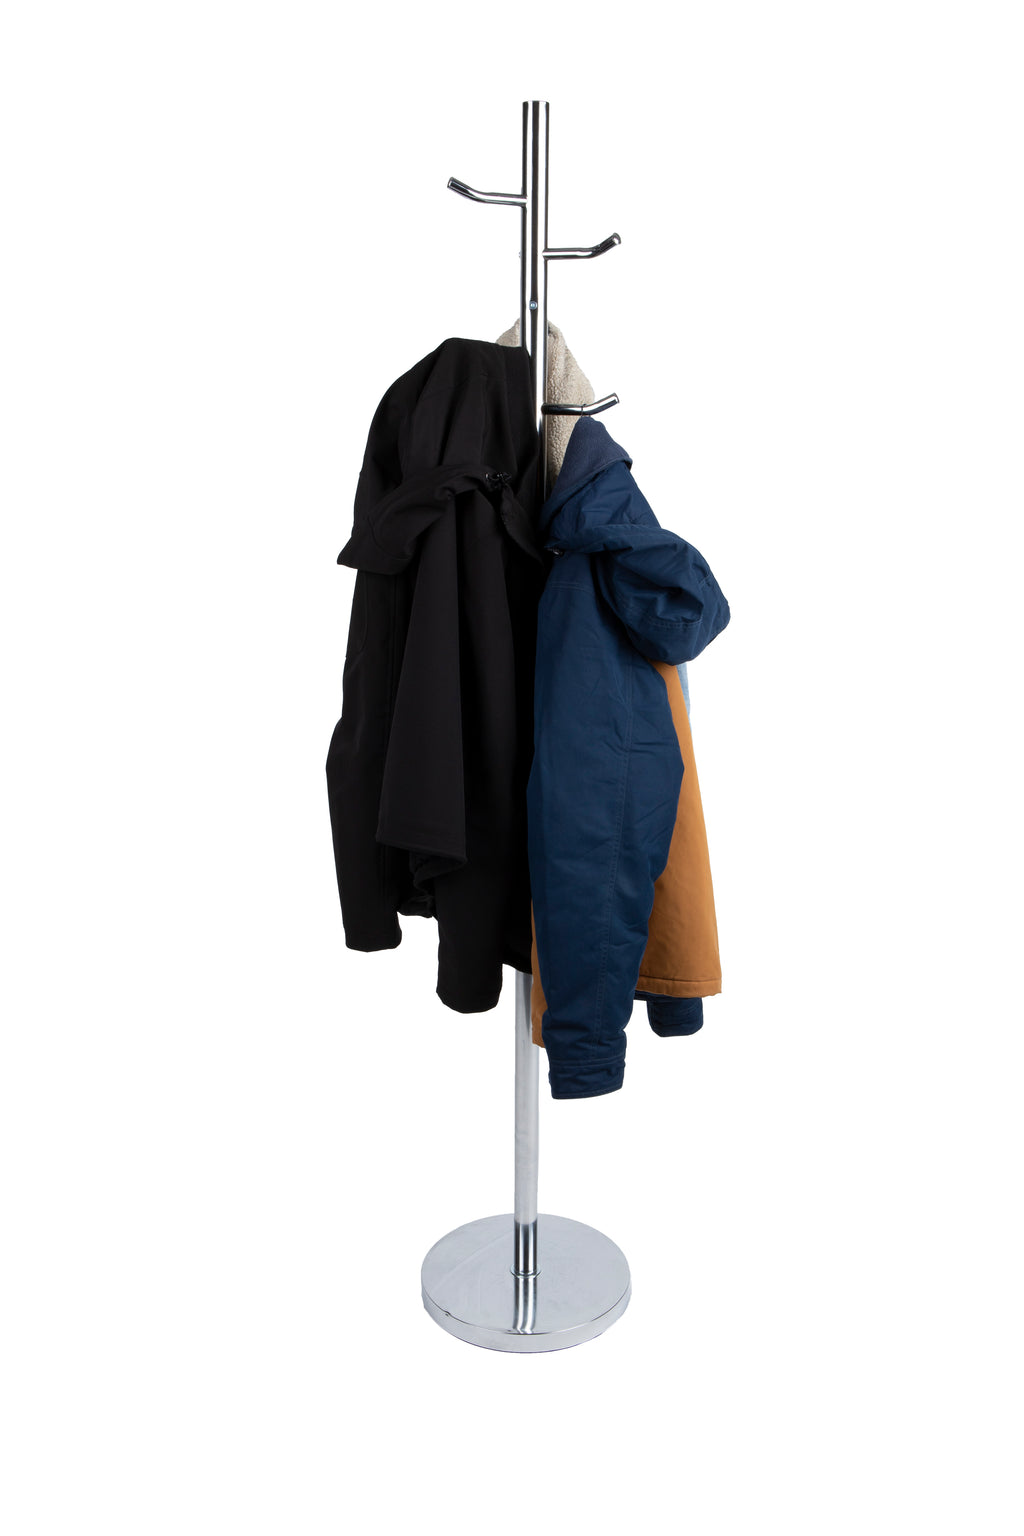 Heavy Duty Standing Coat Rack with 6 Hooks, Silver